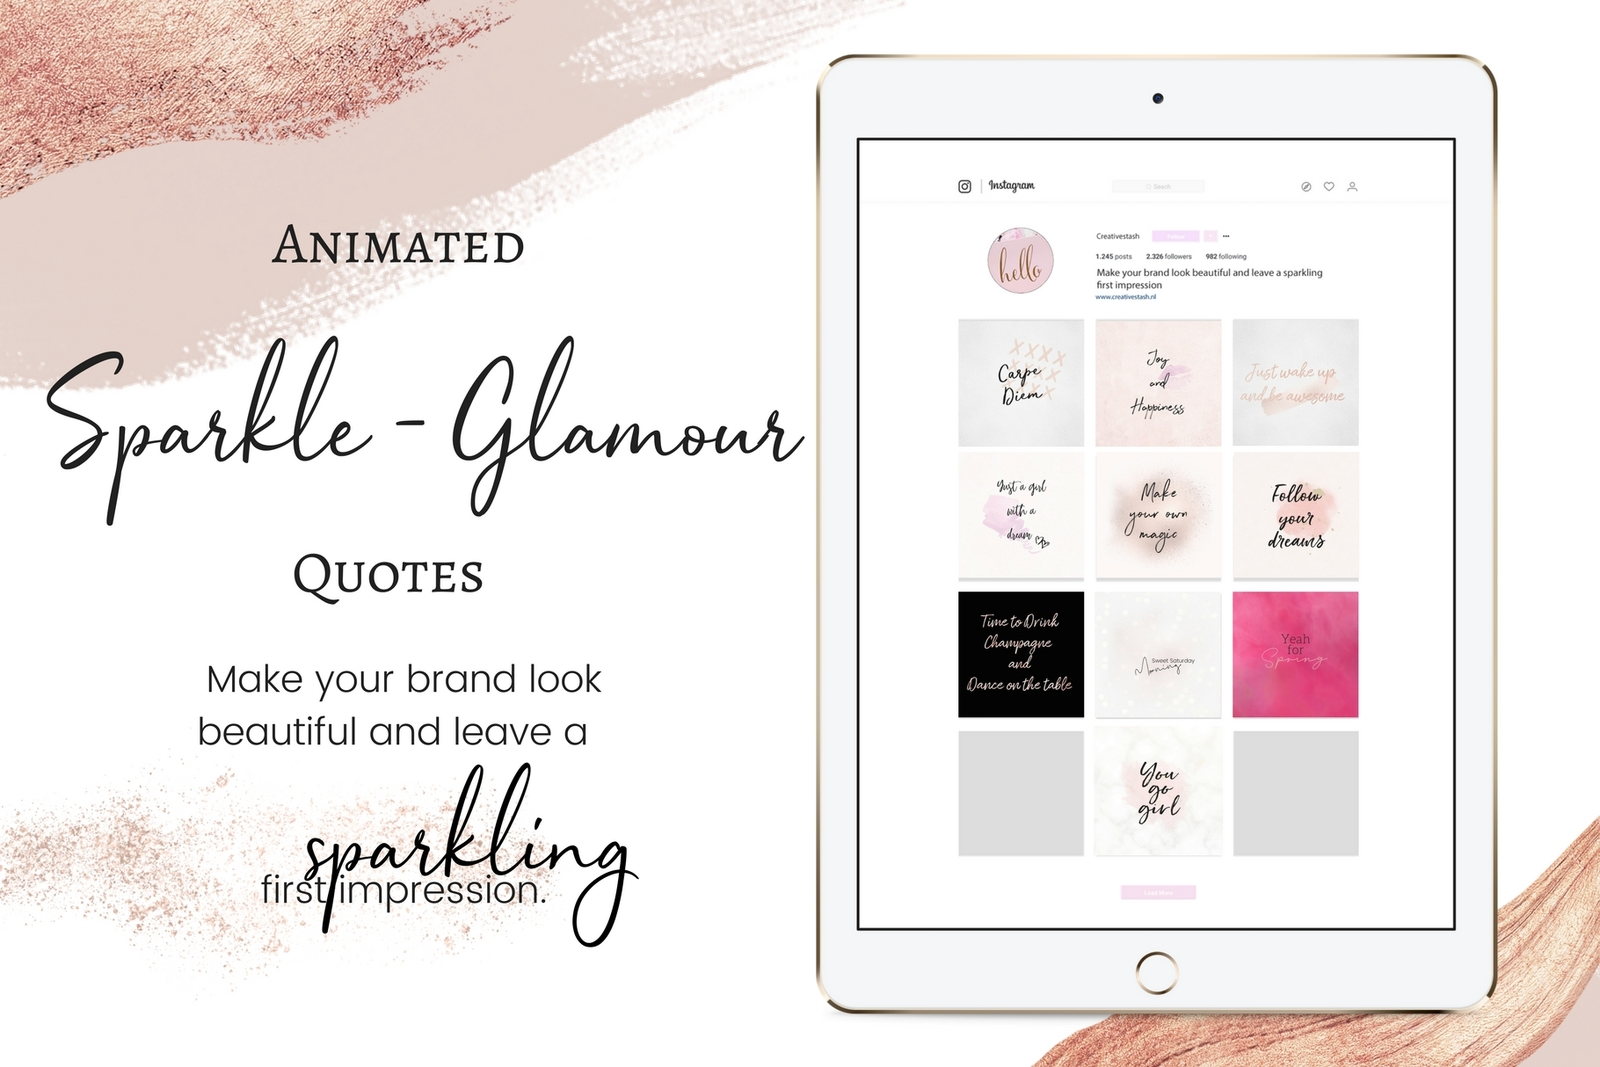 Animated Sparkle, Glamour quotes